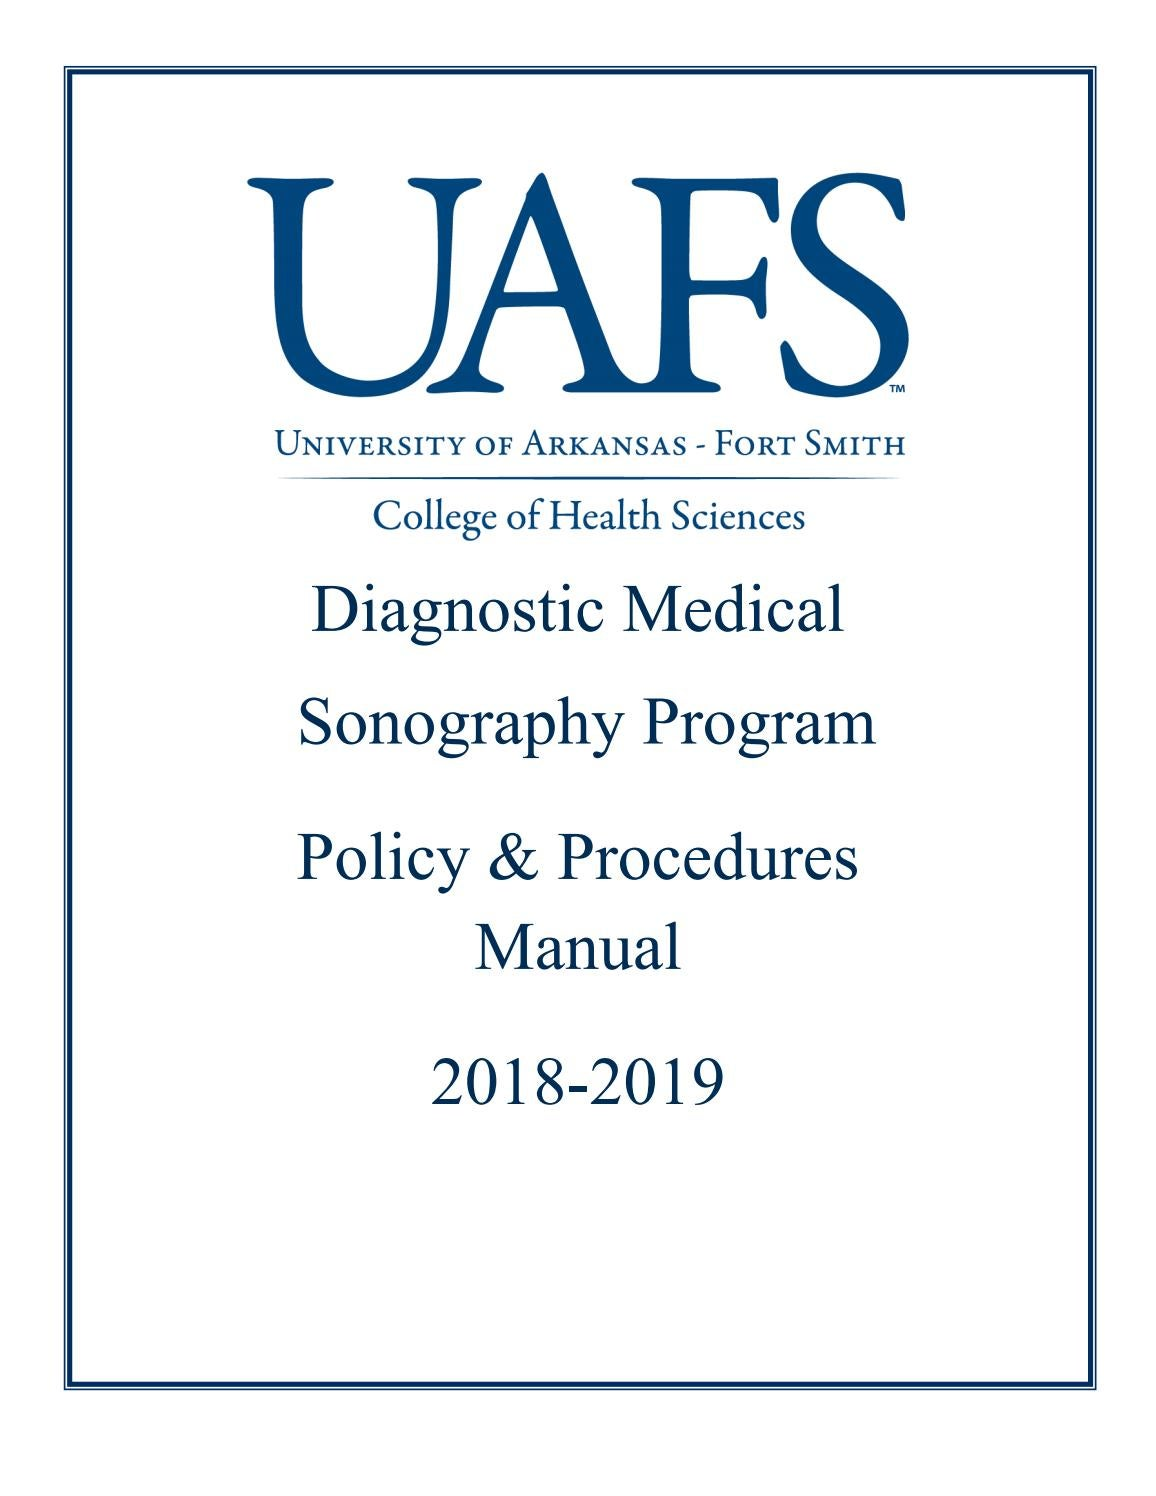 DMS Policy Procedures Manual by University of Arkansas - Fort Smith - issuu